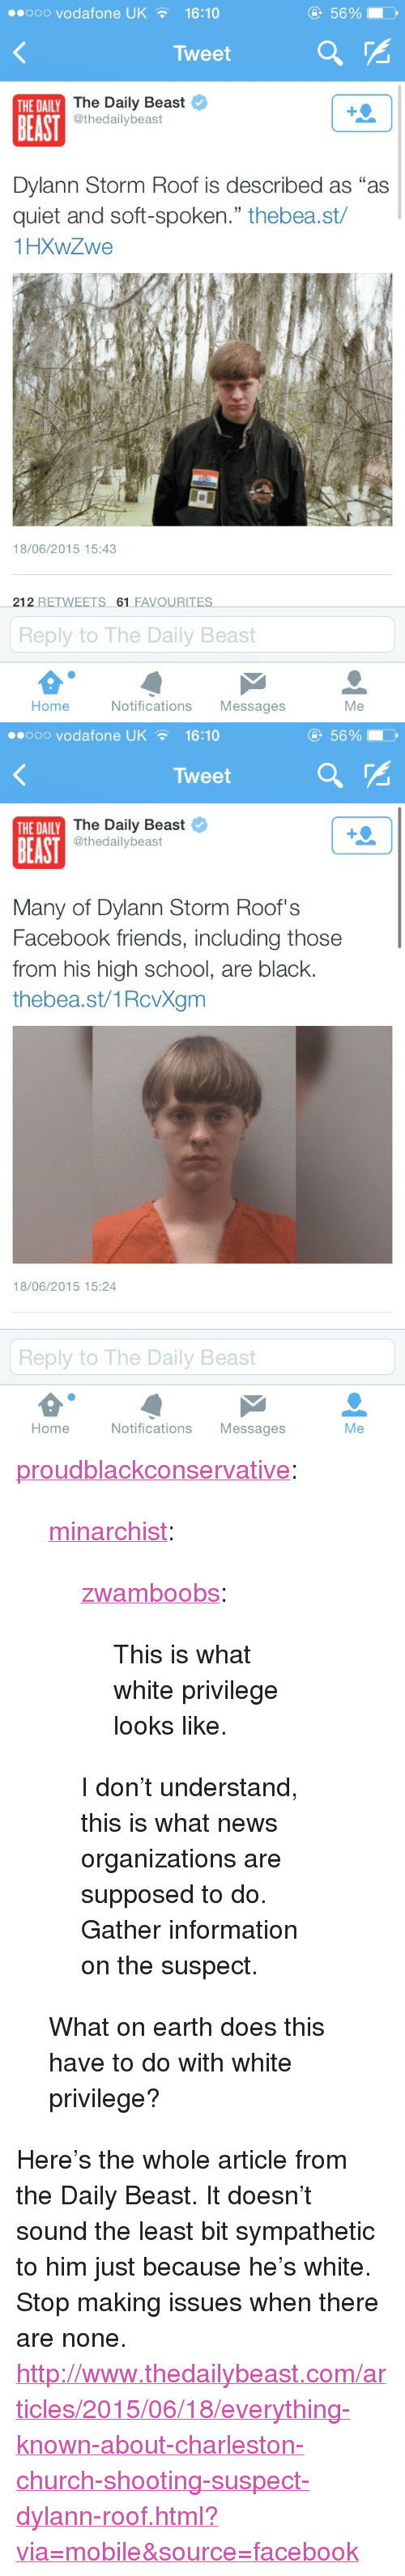 "Church, Facebook, and Friends: eooo vodafone UK16:10  5690  Tweet  The Daily Beast  @thedailybeast  THE DAILY  BEAST  Dylann Storm Roof is described as ""as  quiet and soft-spoken."" thebea.st/  1HXWZwe  18/06/2015 15:43  212 RETWEETS 61 FAVOURITES  Reply to The Daily Beast  Home  Notifications Messages  Me   ..ooo vodafone UK  16:10  5690  Tweet  The Daily Beast  @thedailybeast  THE DAILY  BEAST  Many of Dylann Storm Roof's  Facebook friends, including those  from his high school, are black.  thebea.st/1RcvXgm  18/06/2015 15:24  Reply to The Daily Beast  Home  Notifications Messages  Me <p><a class=""tumblr_blog"" href=""http://proudblackconservative.tumblr.com/post/121848653839/minarchist-zwamboobs-this-is-what-white"">proudblackconservative</a>:</p>  <blockquote><p><a class=""tumblr_blog"" href=""http://minarchist.tumblr.com/post/121847656894/zwamboobs-this-is-what-white-privilege-looks"">minarchist</a>:</p>  <blockquote><p><a class=""tumblr_blog"" href=""http://zwamboobs.tumblr.com/post/121841004836/this-is-what-white-privilege-looks-like"">zwamboobs</a>:</p>  <blockquote><p>This is what white privilege looks like.</p></blockquote>  <p>I don't understand, this is what news organizations are supposed to do. Gather information on the suspect.</p></blockquote>  <p>What on earth does this have to do with white privilege?<br/></p></blockquote>  <p>Here's the whole article from the Daily Beast. It doesn&rsquo;t sound the least bit sympathetic to him just because he's white. Stop making issues when there are none. <a href=""http://www.thedailybeast.com/articles/2015/06/18/everything-known-about-charleston-church-shooting-suspect-dylann-roof.html?via=mobile&amp;source=facebook"">http://www.thedailybeast.com/articles/2015/06/18/everything-known-about-charleston-church-shooting-suspect-dylann-roof.html?via=mobile&amp;source=facebook</a><br/></p>"